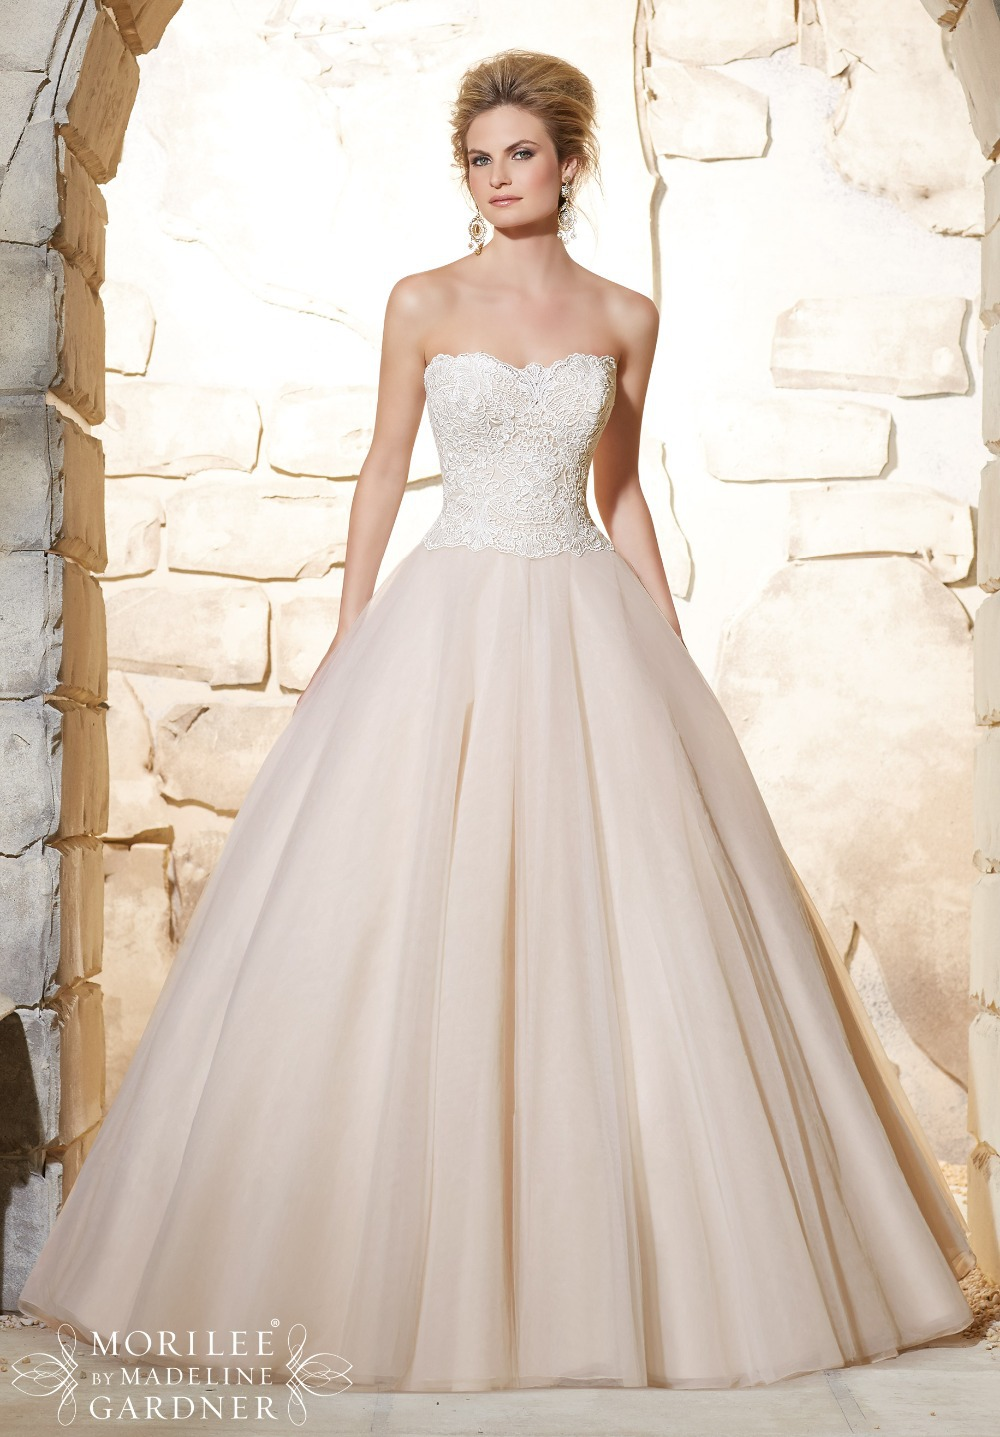 Champagne Ball Gown Organza Wedding Dresses – fashion dresses 42be1e0257bb